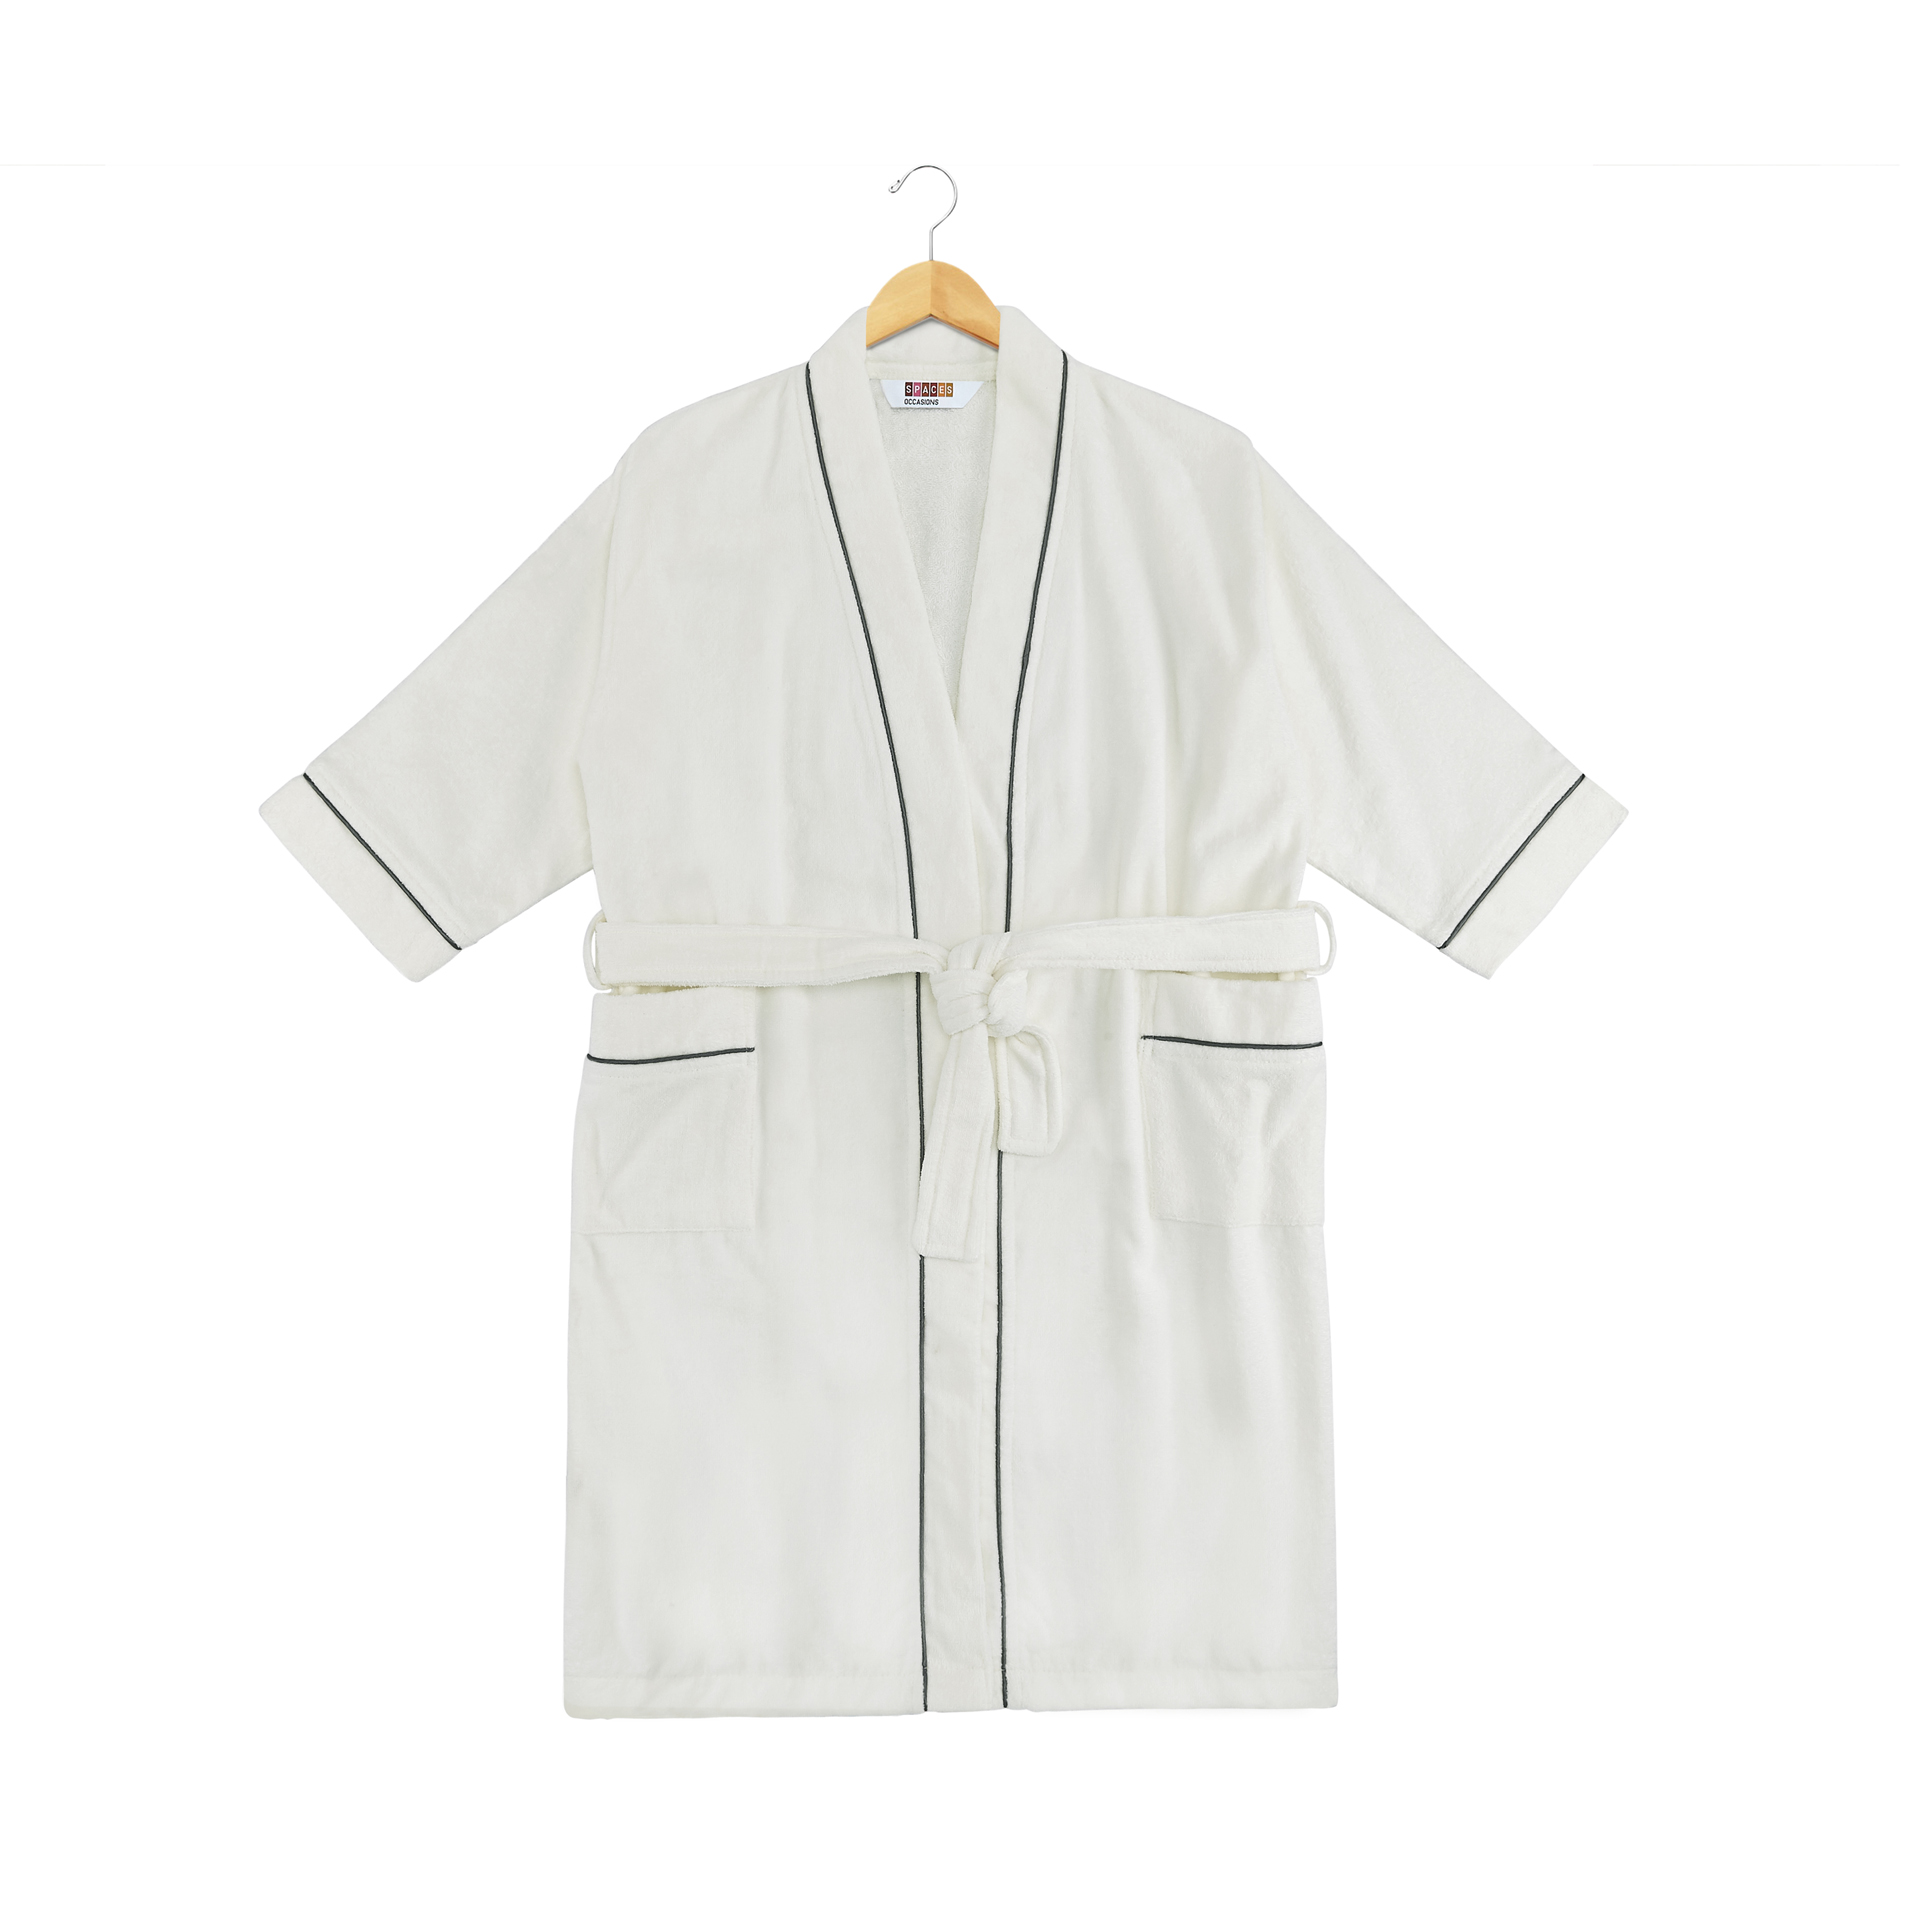 Spaces Allure Cotton Bath Robes in White-Ash Colour by Spaces